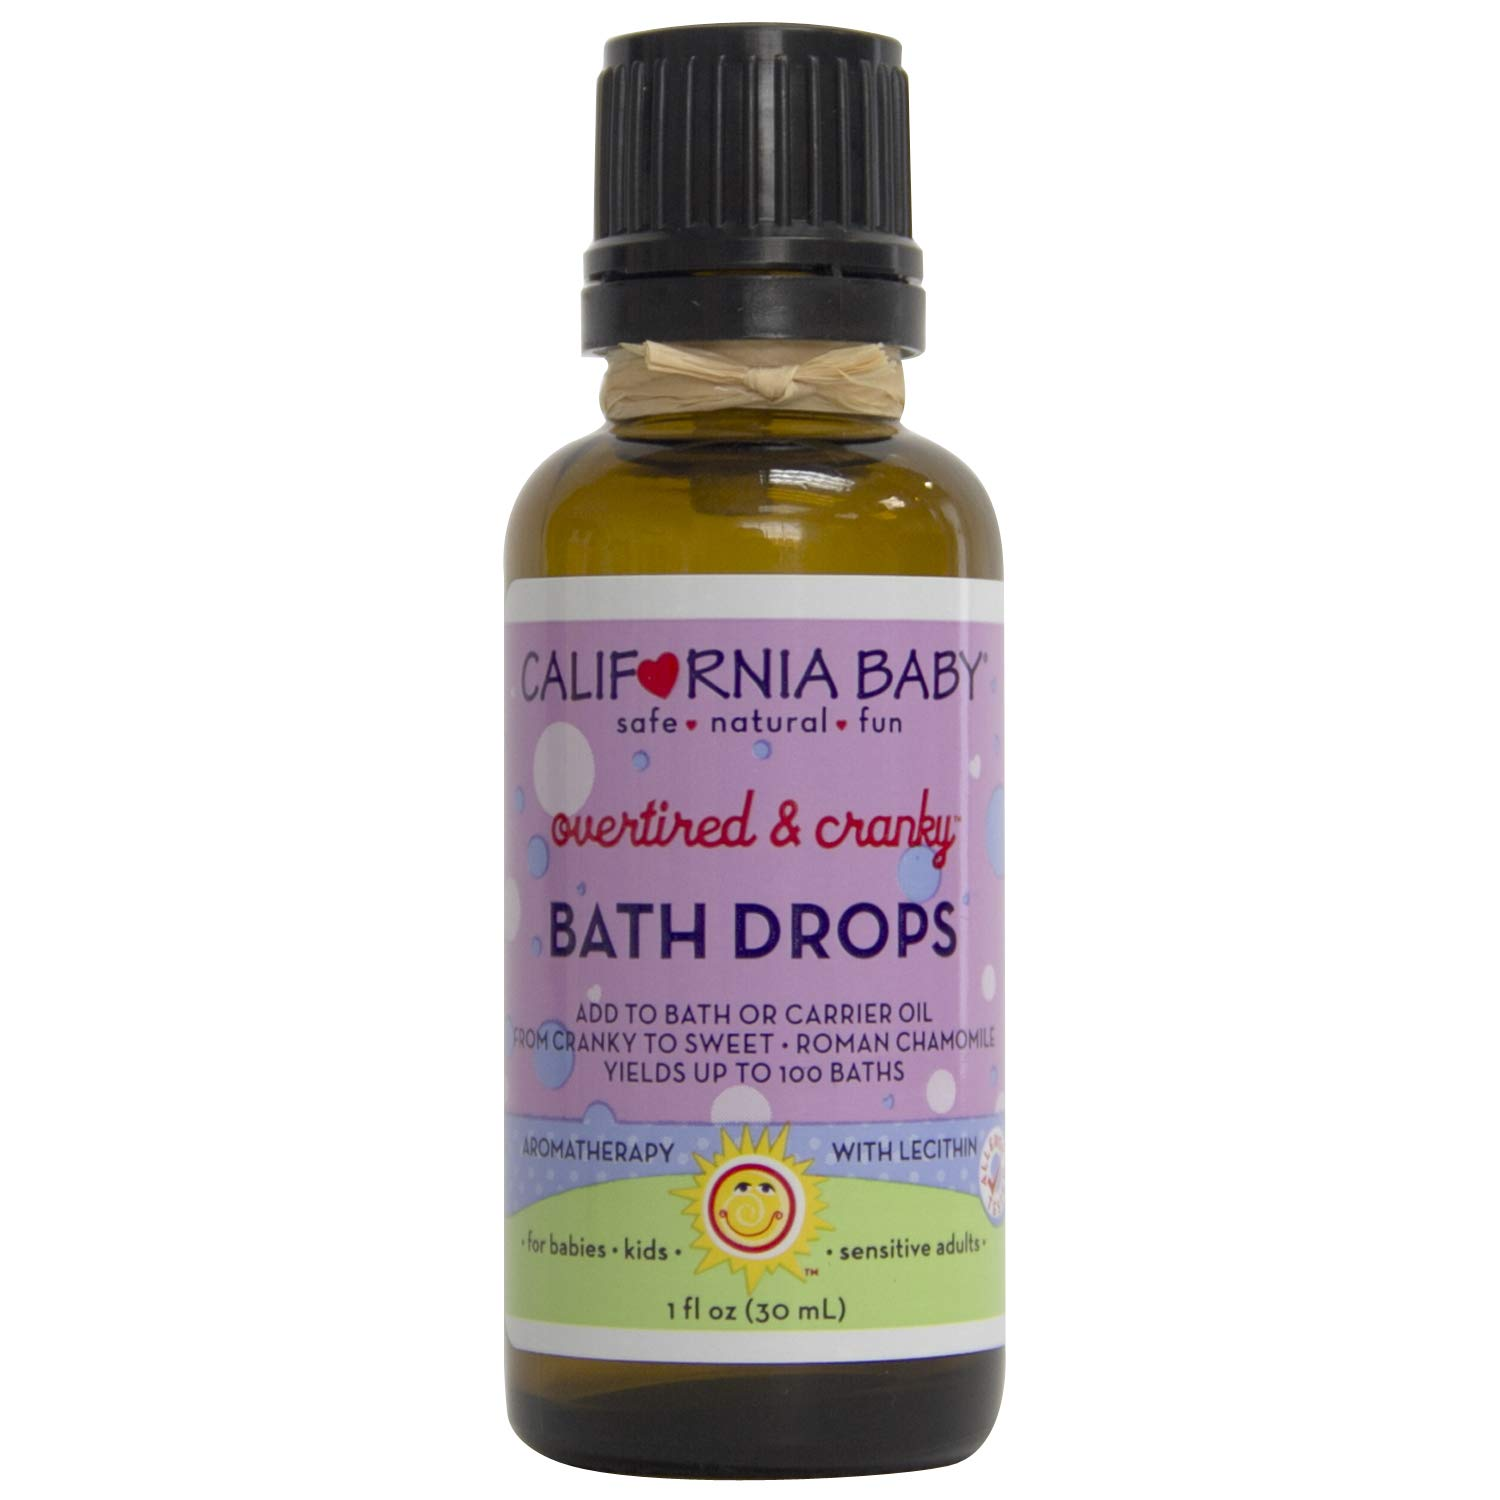 California Baby Essential Oil Bath Drop - Overtired & Cranky - 1 oz by California Baby